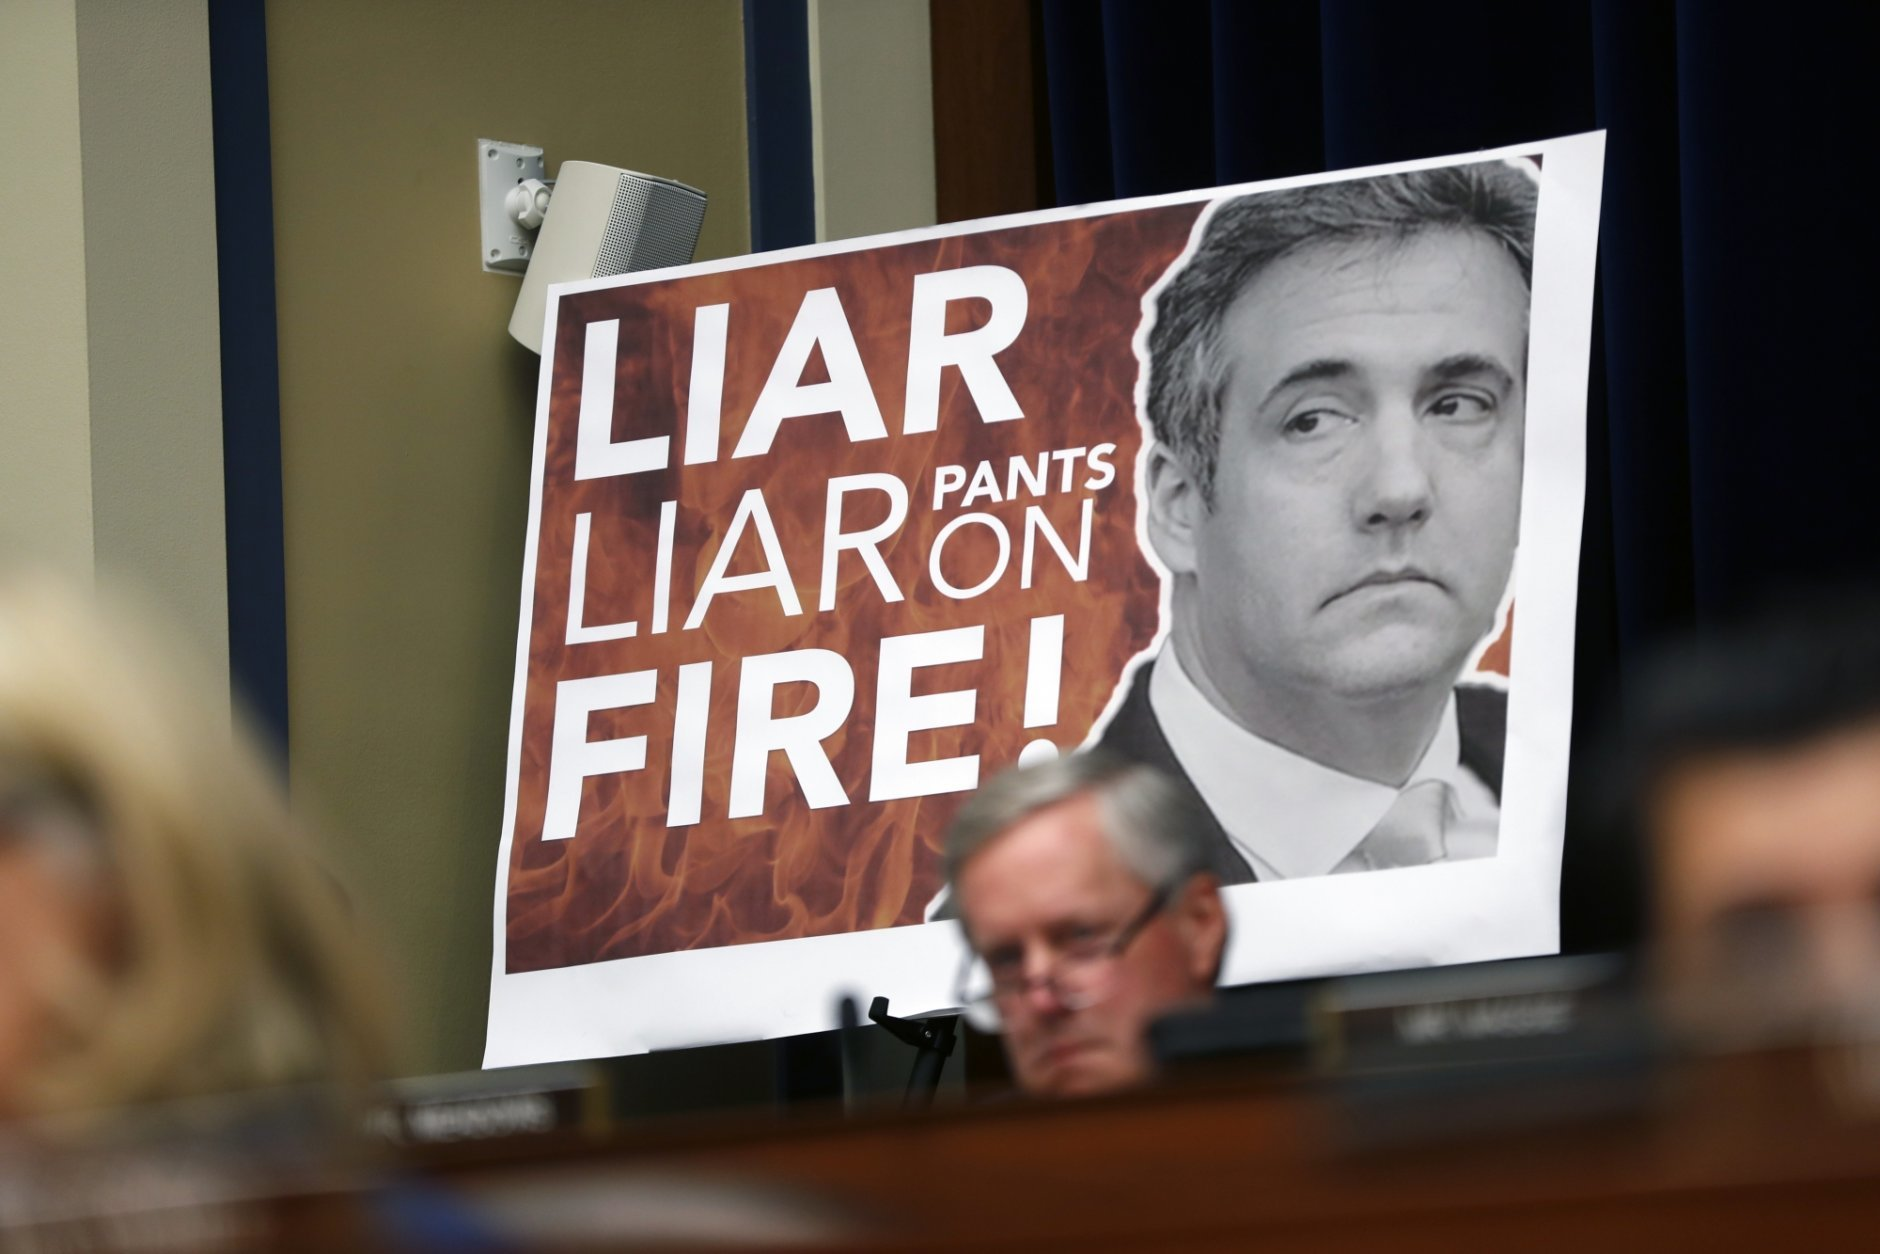 A poster on display during a hearing with Michael Cohen, President Donald Trump's former personal lawyer, before the House Oversight and Reform Committee on Capitol Hill in Washington, Wednesday, Feb. 27, 2019. (AP Photo/Pablo Martinez Monsivais)